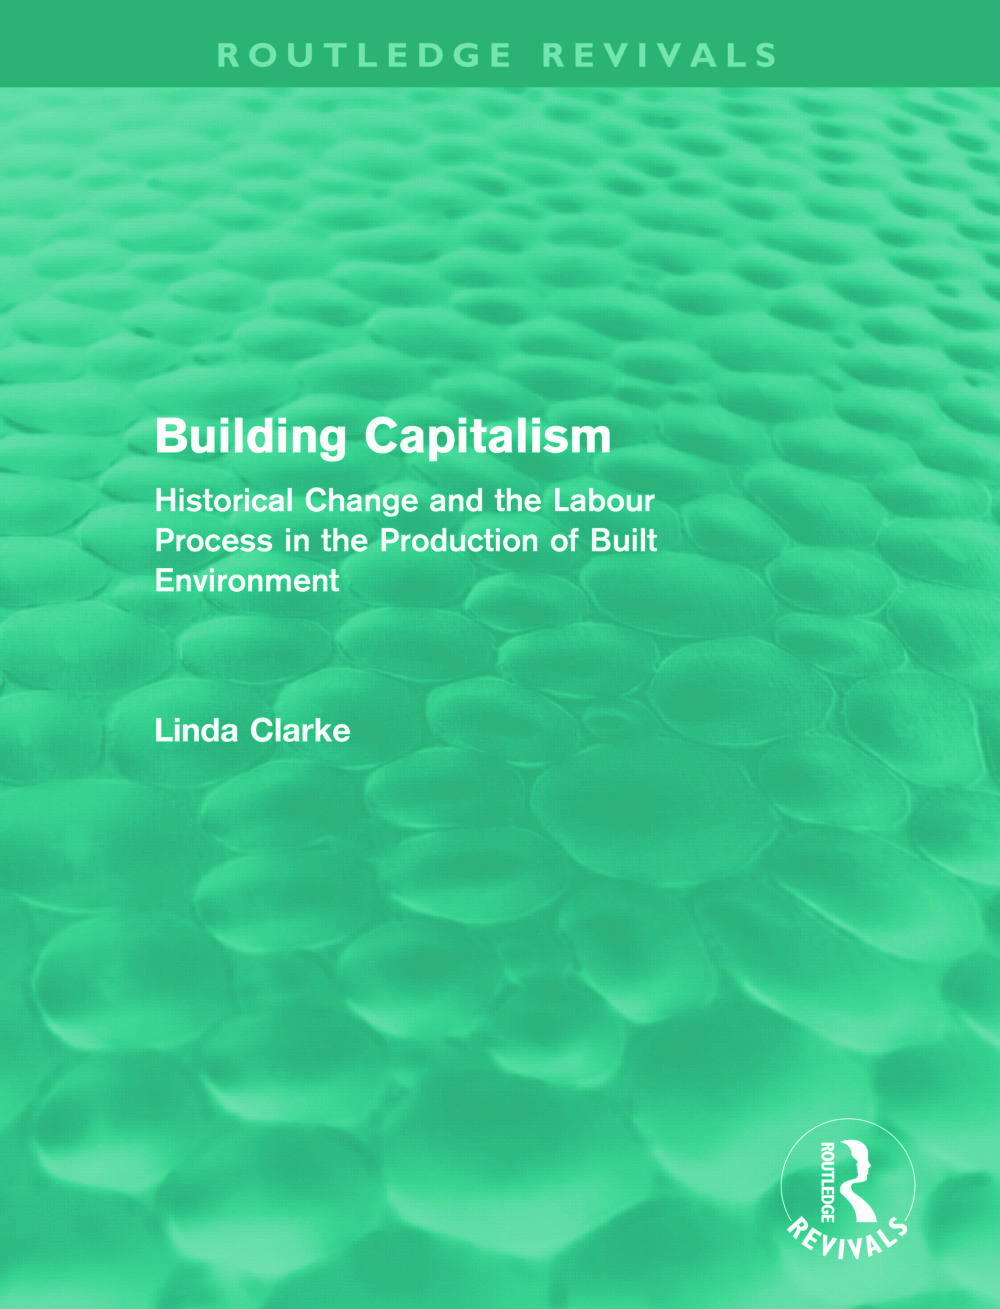 Building Capitalism (Routledge Revivals): Historical Change and the Labour Process in the Production of Built Environment (Hardback) book cover